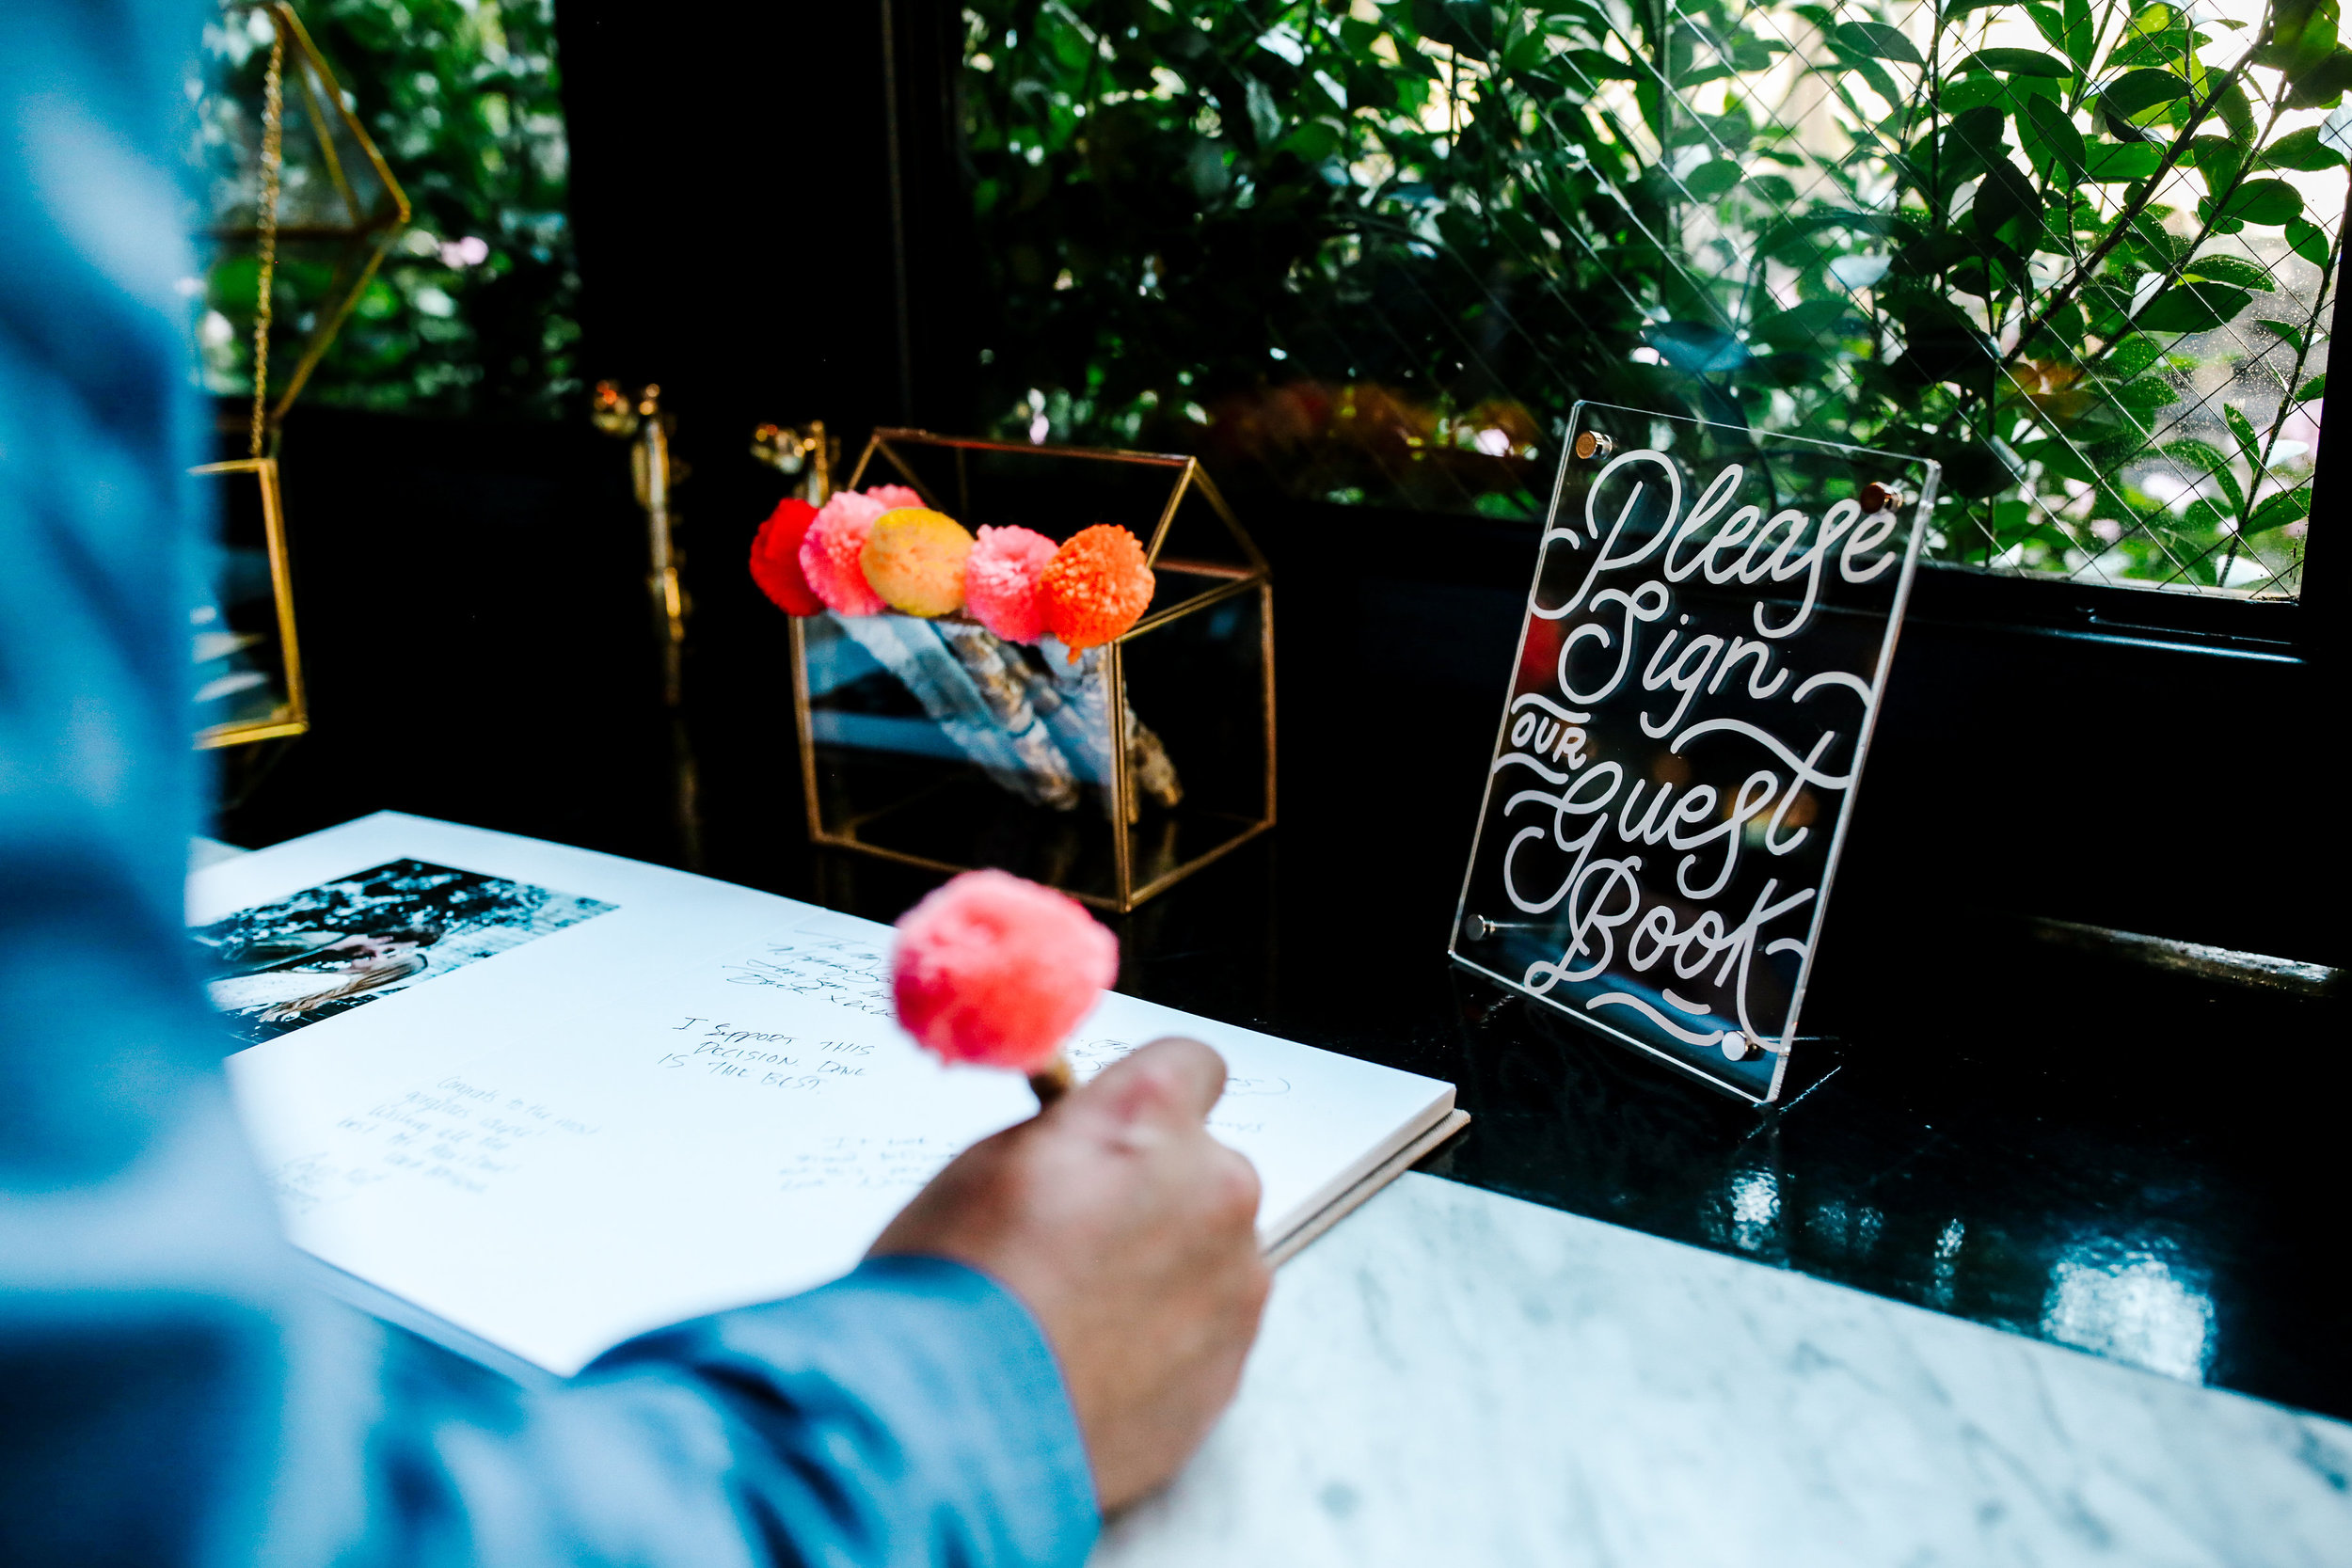 inspired by this - 4 UNIQUE IDEAS FOR A GUEST BOOK